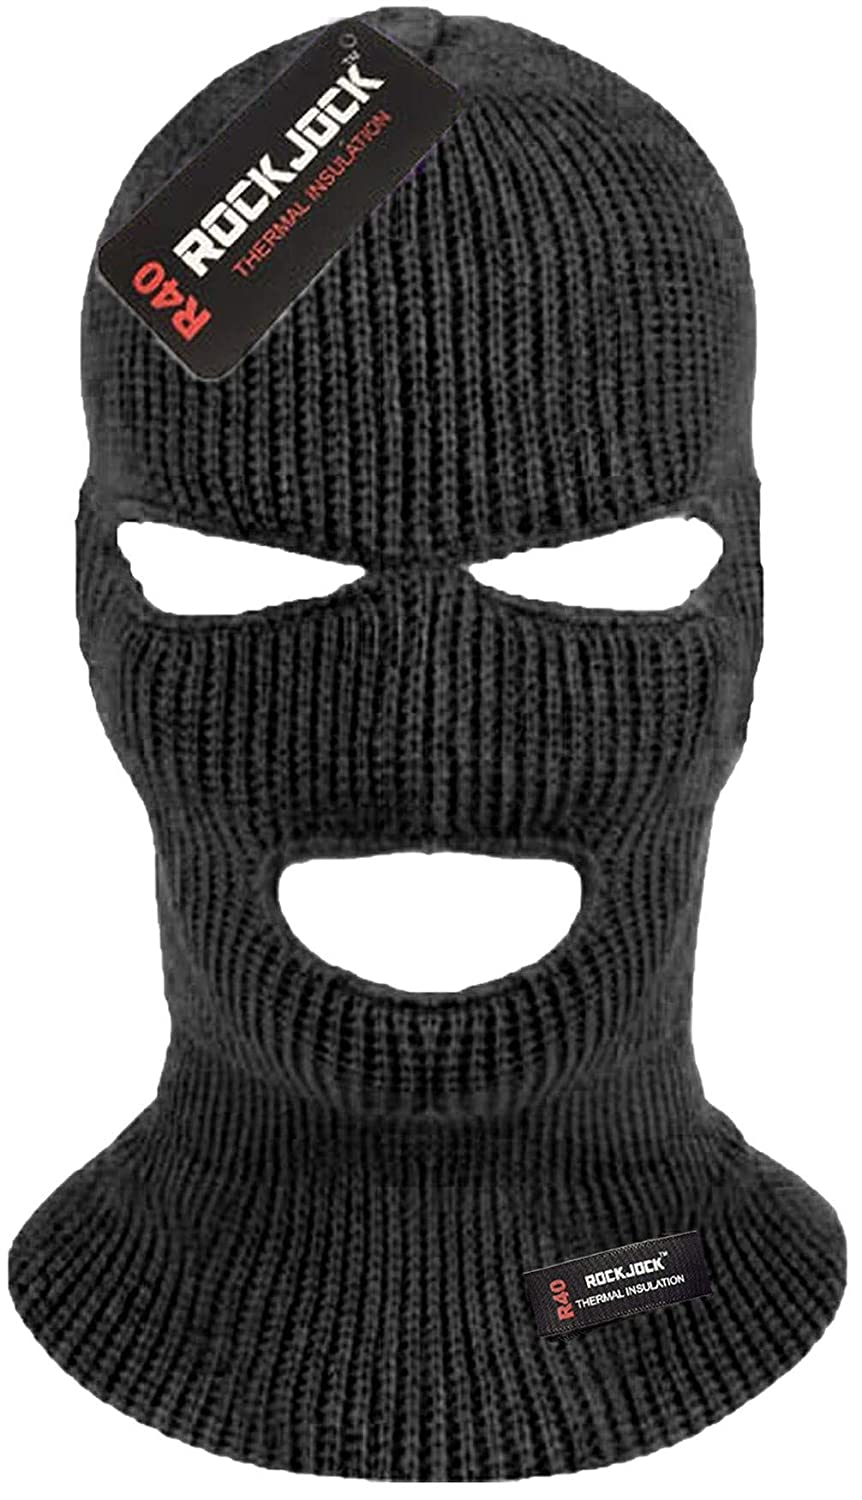 a4d21322 Black military sas style 3 hole balaclava: Amazon.co.uk: Sports & Outdoors